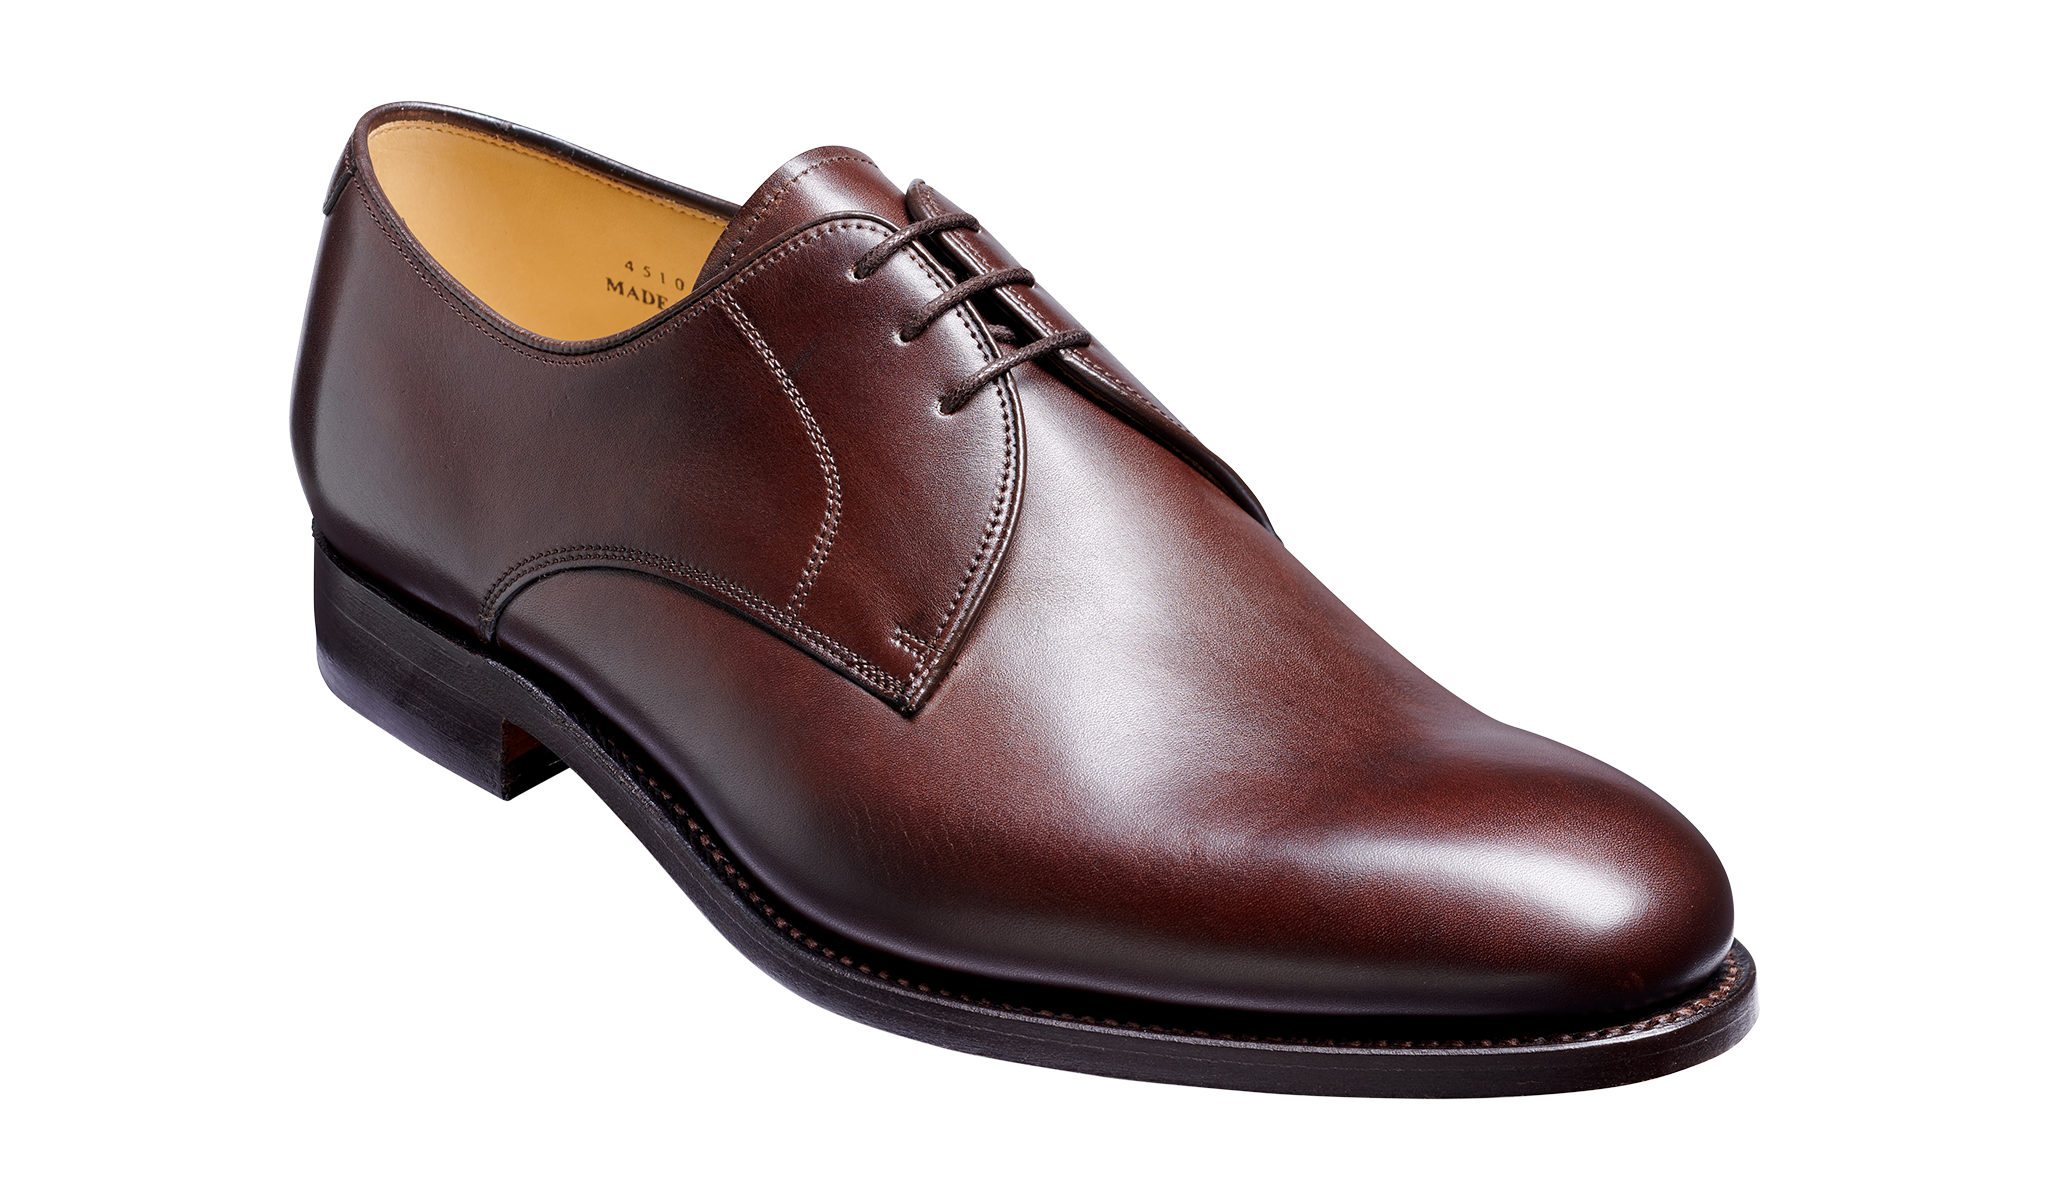 March - Men's Handmade Brown Leather Derby Shoe From Barker